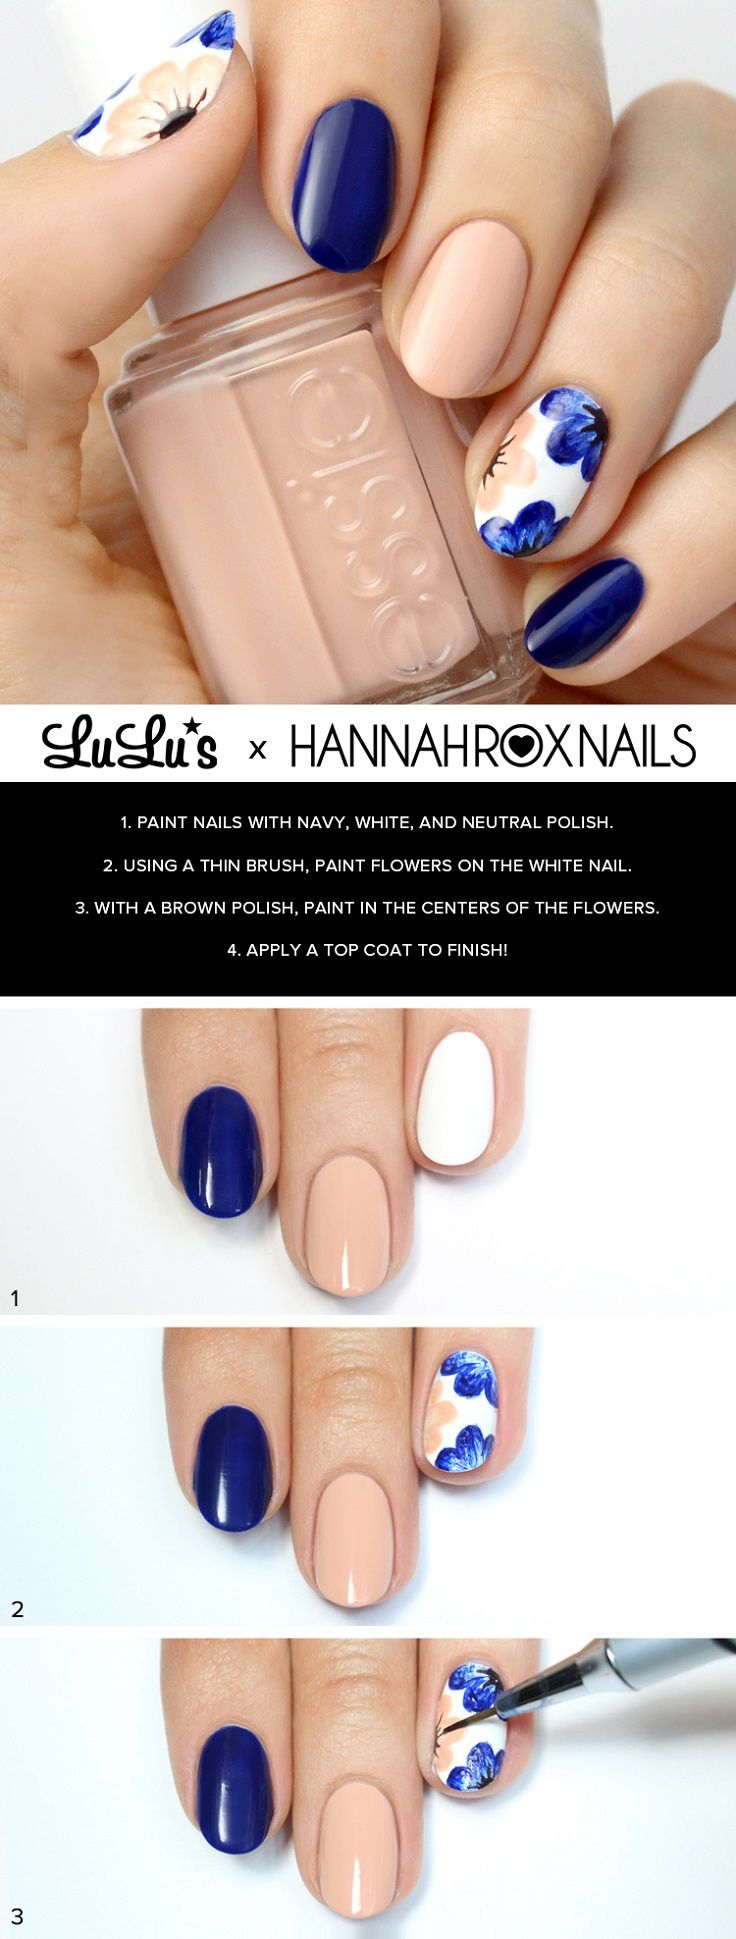 Lorde inspired nail tutorial - Nude And Navy Blue Floral Nail Tutorial 15 Color Block Nail Art Tutorials For Summer